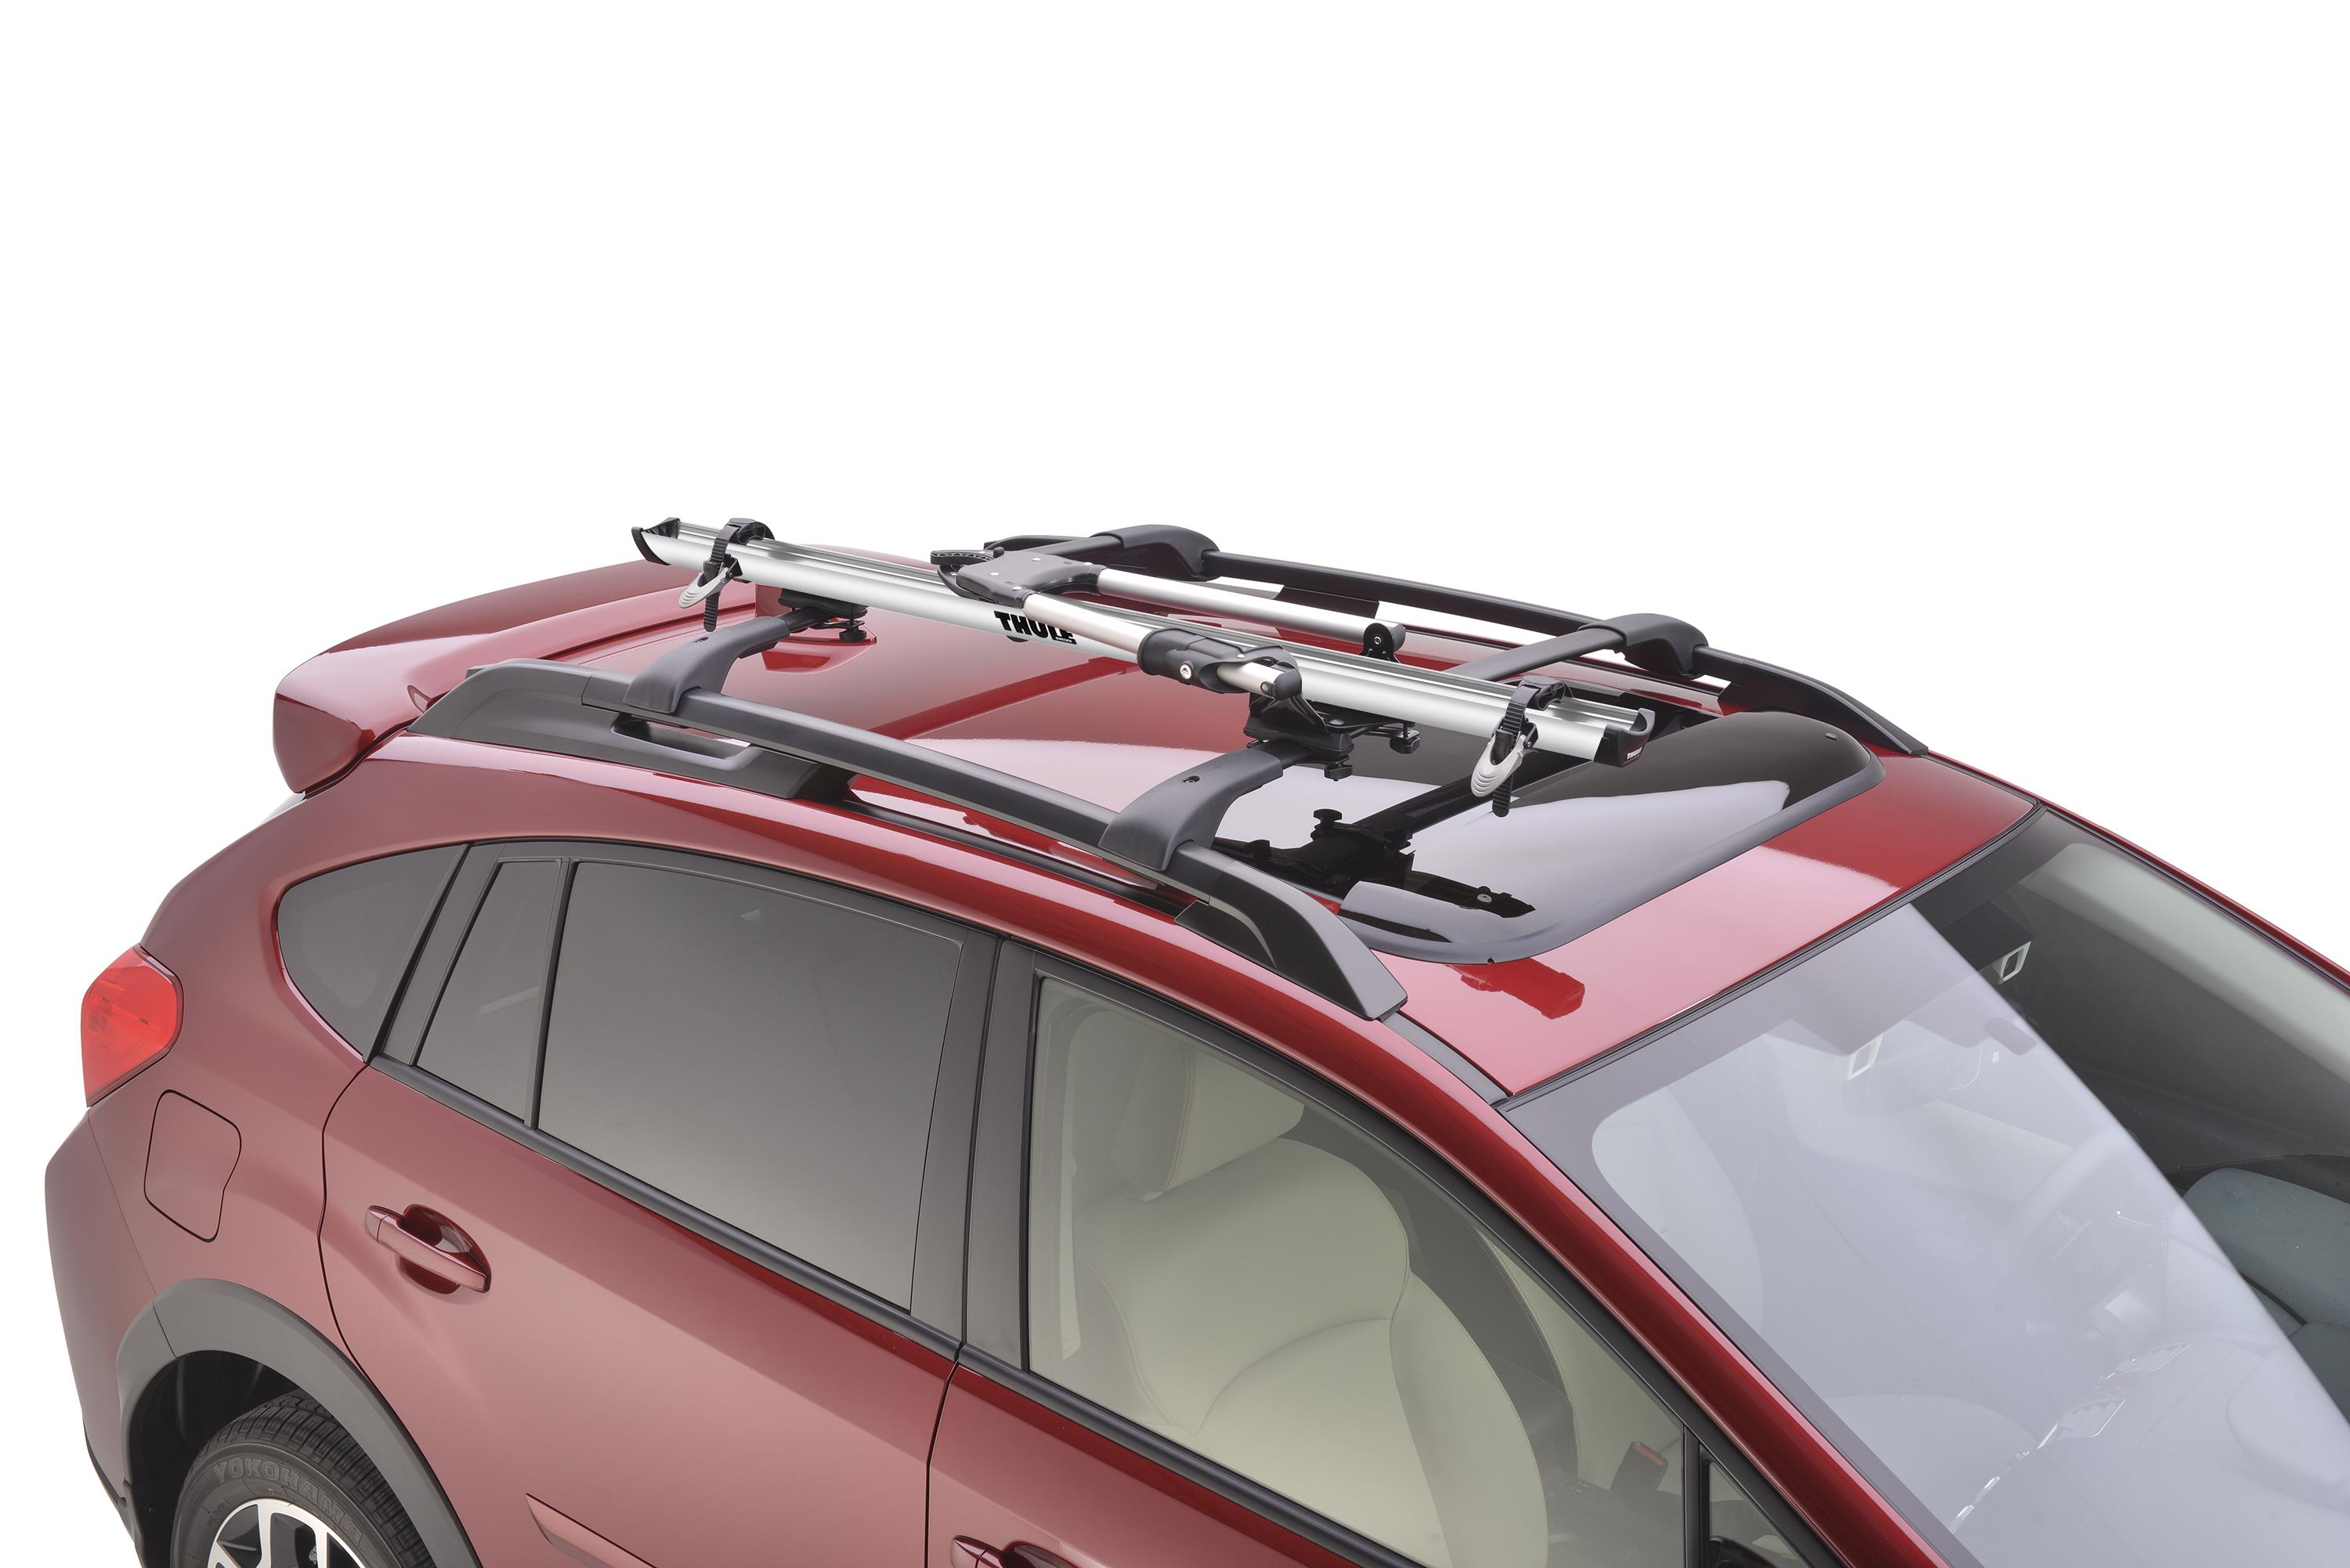 Soa567b020 Subaru Thule Bike Carrier Roof Mounted